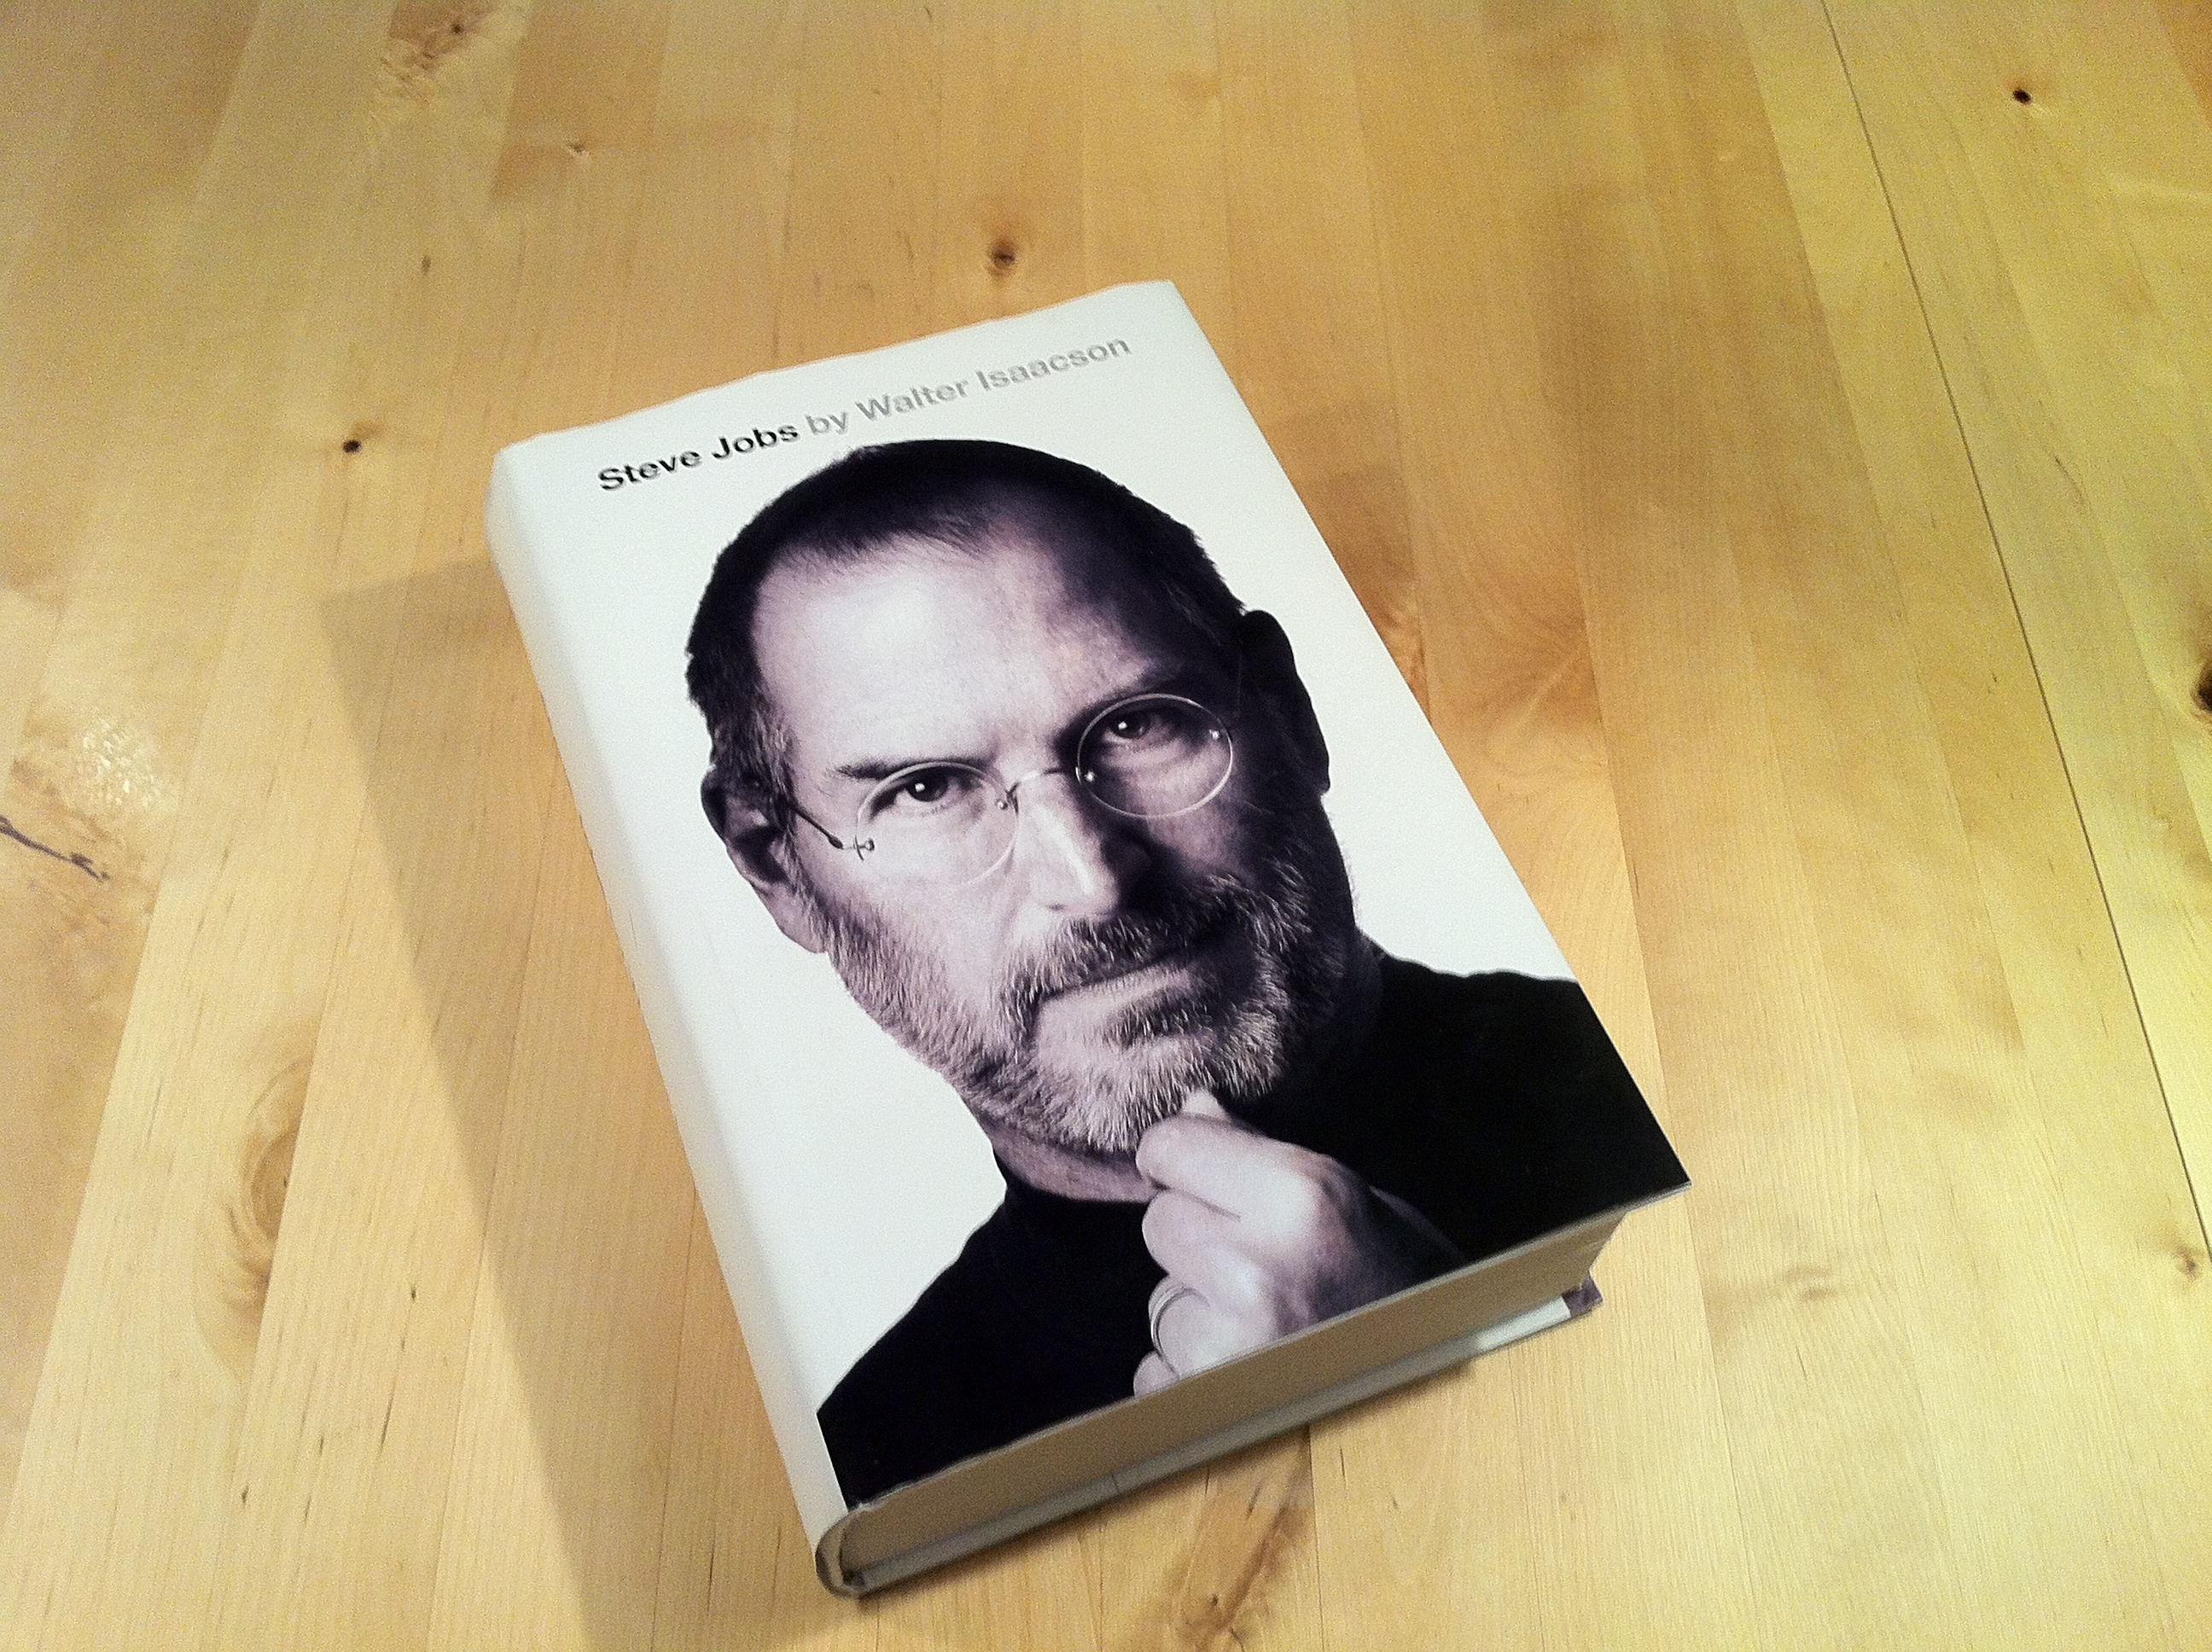 ... Steve Jobs as a summary for everyone who didn't want to read the